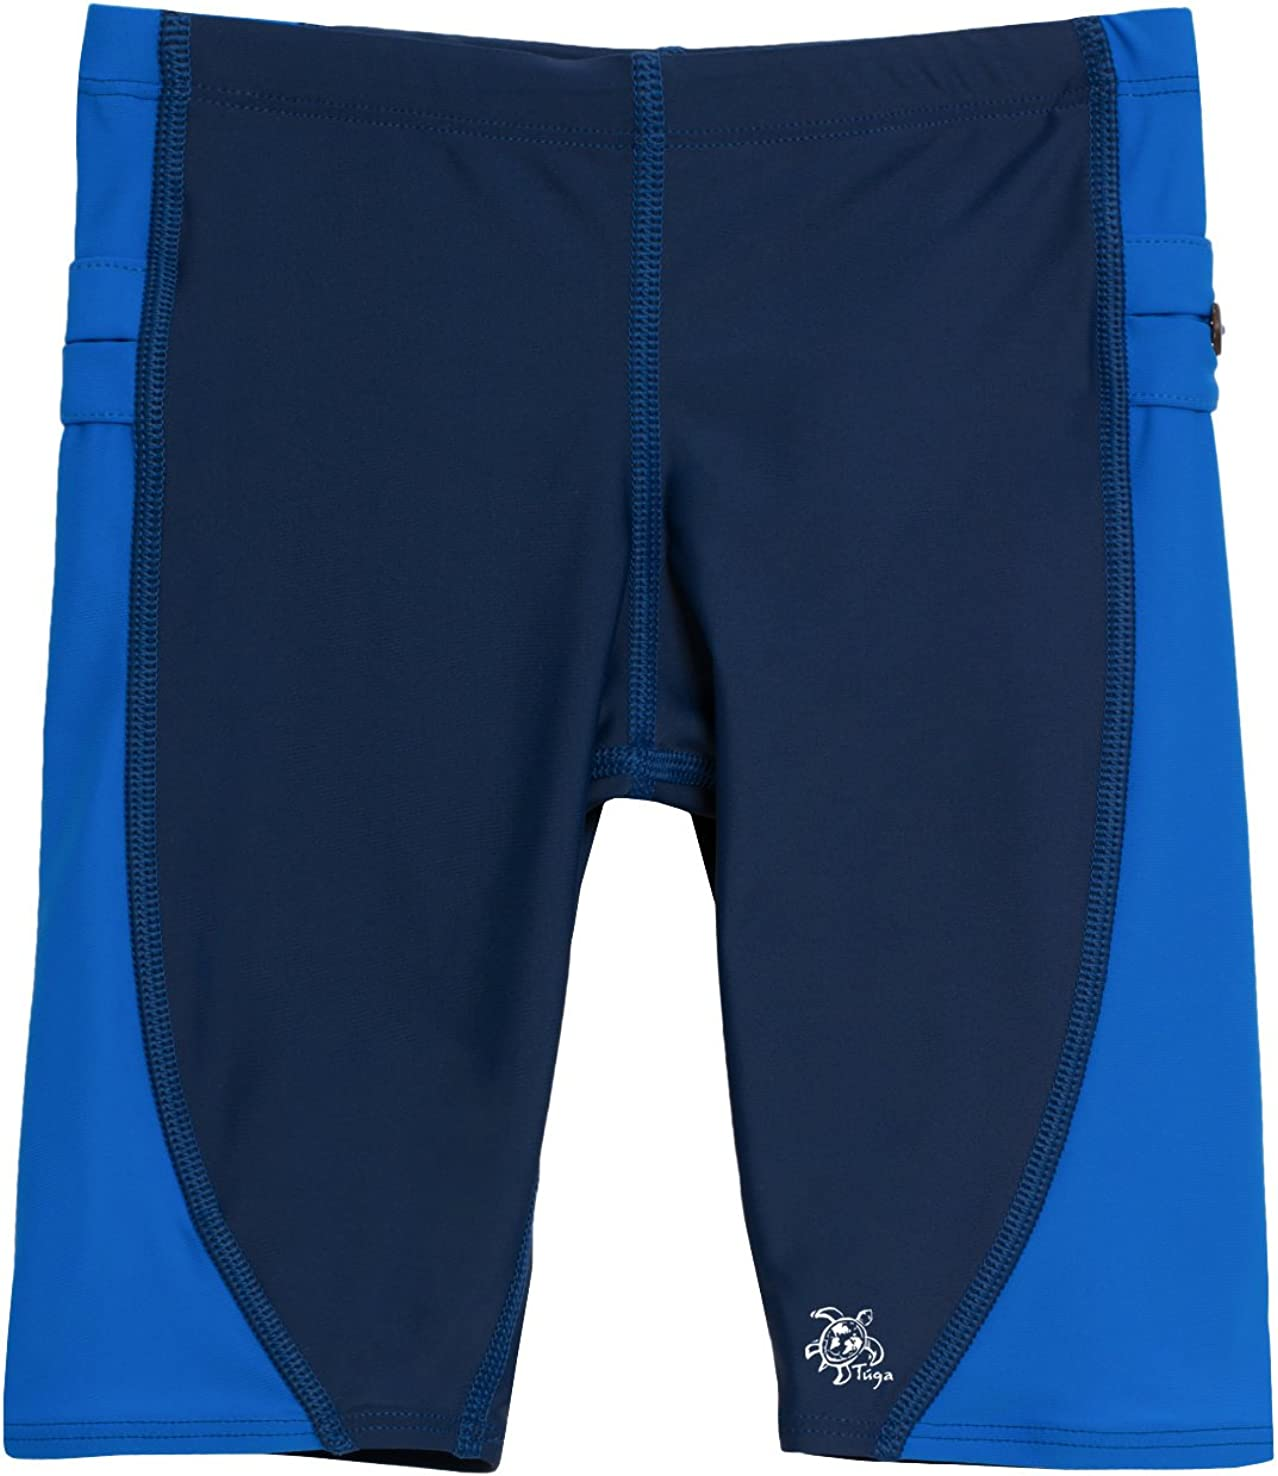 Tuga Boys Snorkeling Jammer, UPF 50+ Sun Protection Swim Short